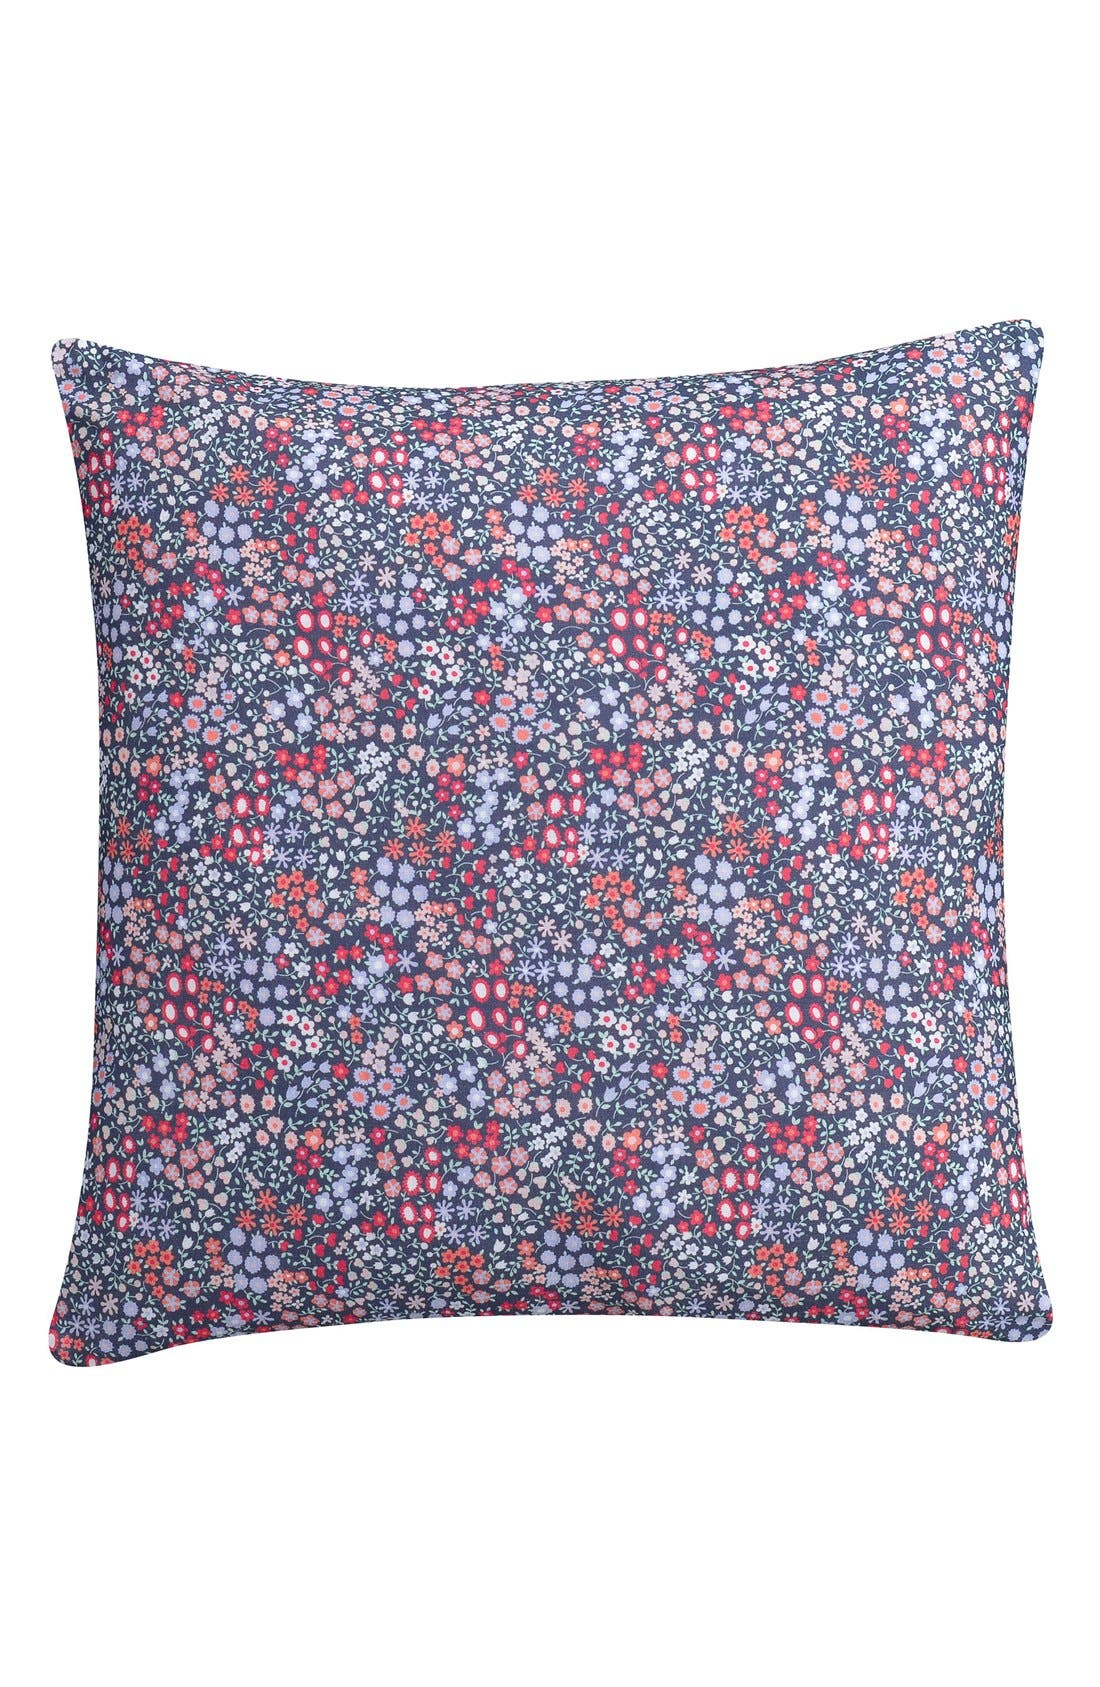 Main Image - cupcakes and cashmere 'Sketch' Floral Print Accent Pillow